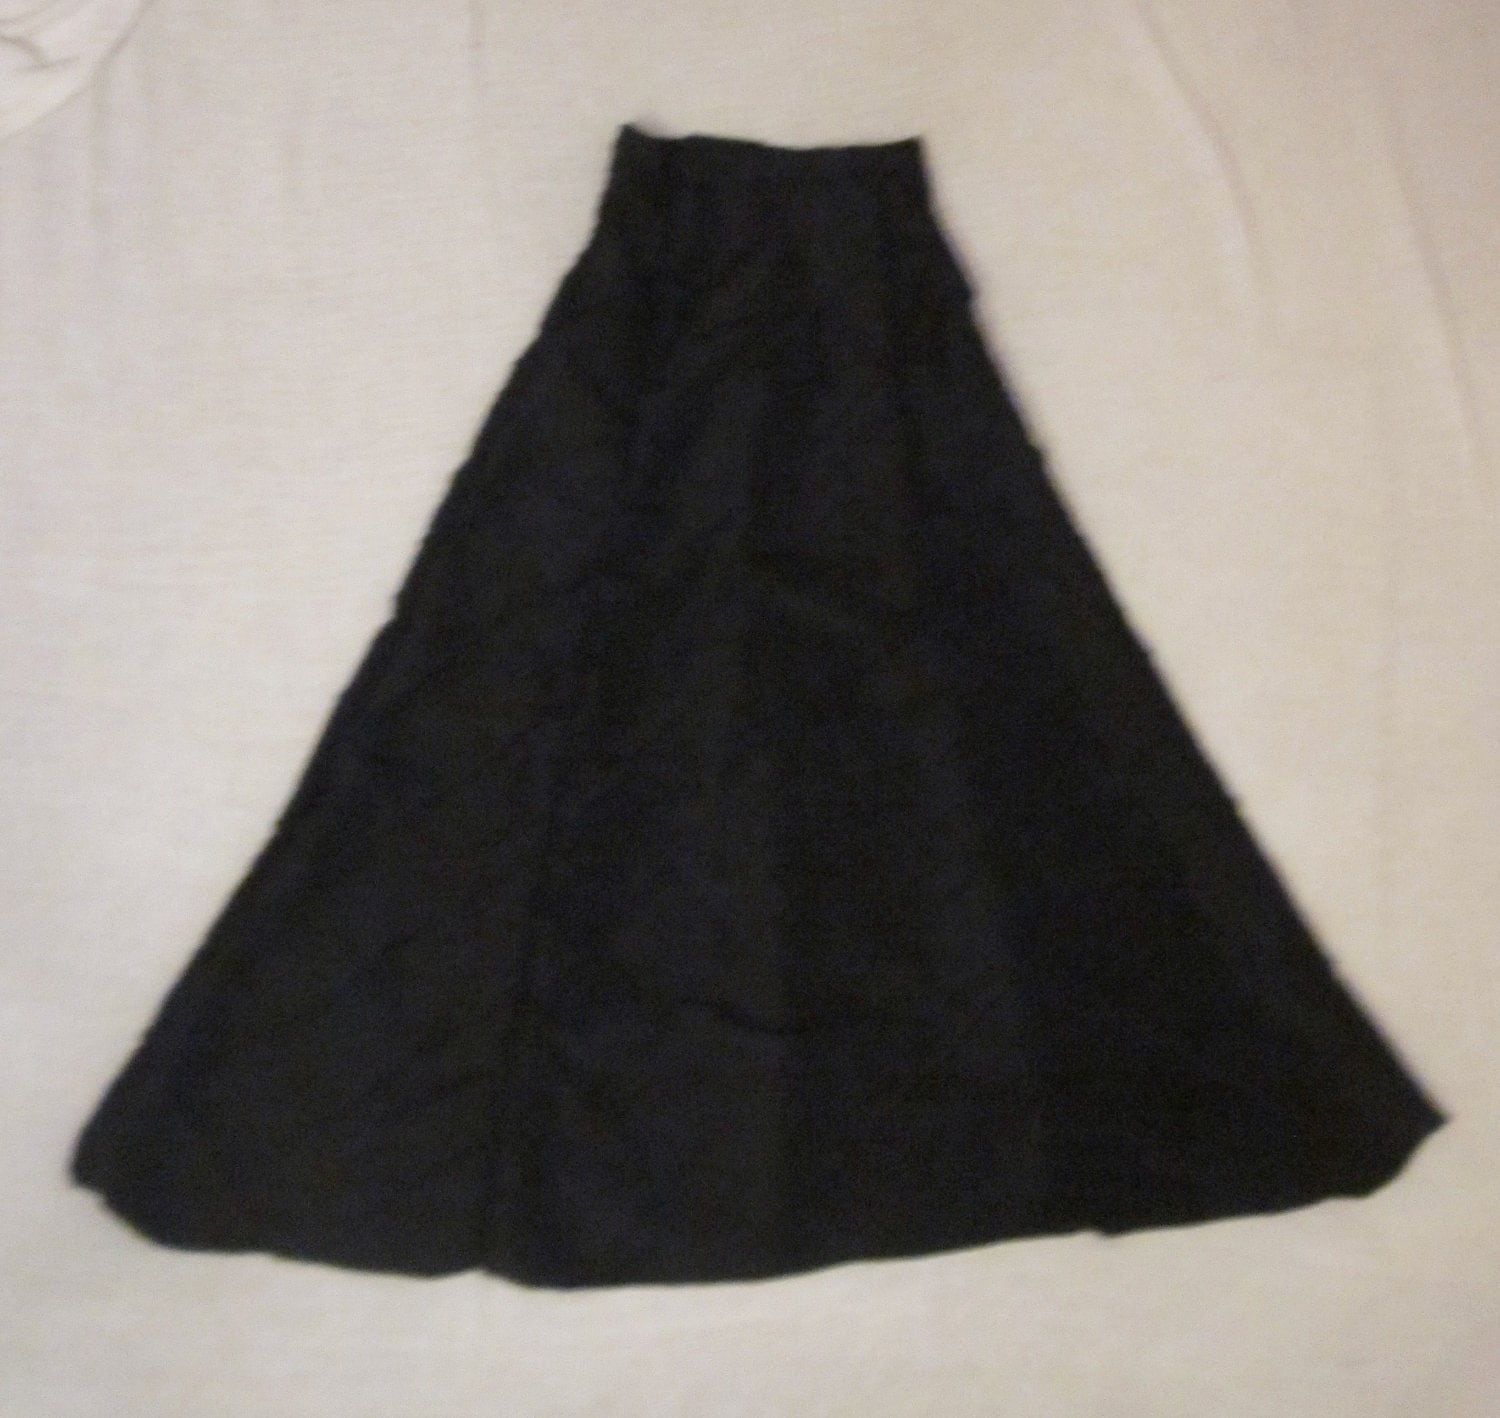 Lularoe XS Extra Small Maxi Floor Length Skirt Tribal Black White Condition is New with tags. Shipped with USPS Priority Mail. Women's Plus Size Floor Length Black Skirt Size 16W Larry Levine Woman. $ 0 bids. It has two elastic sections on the back sides and a clasp and zip closure on the left side. It is 36